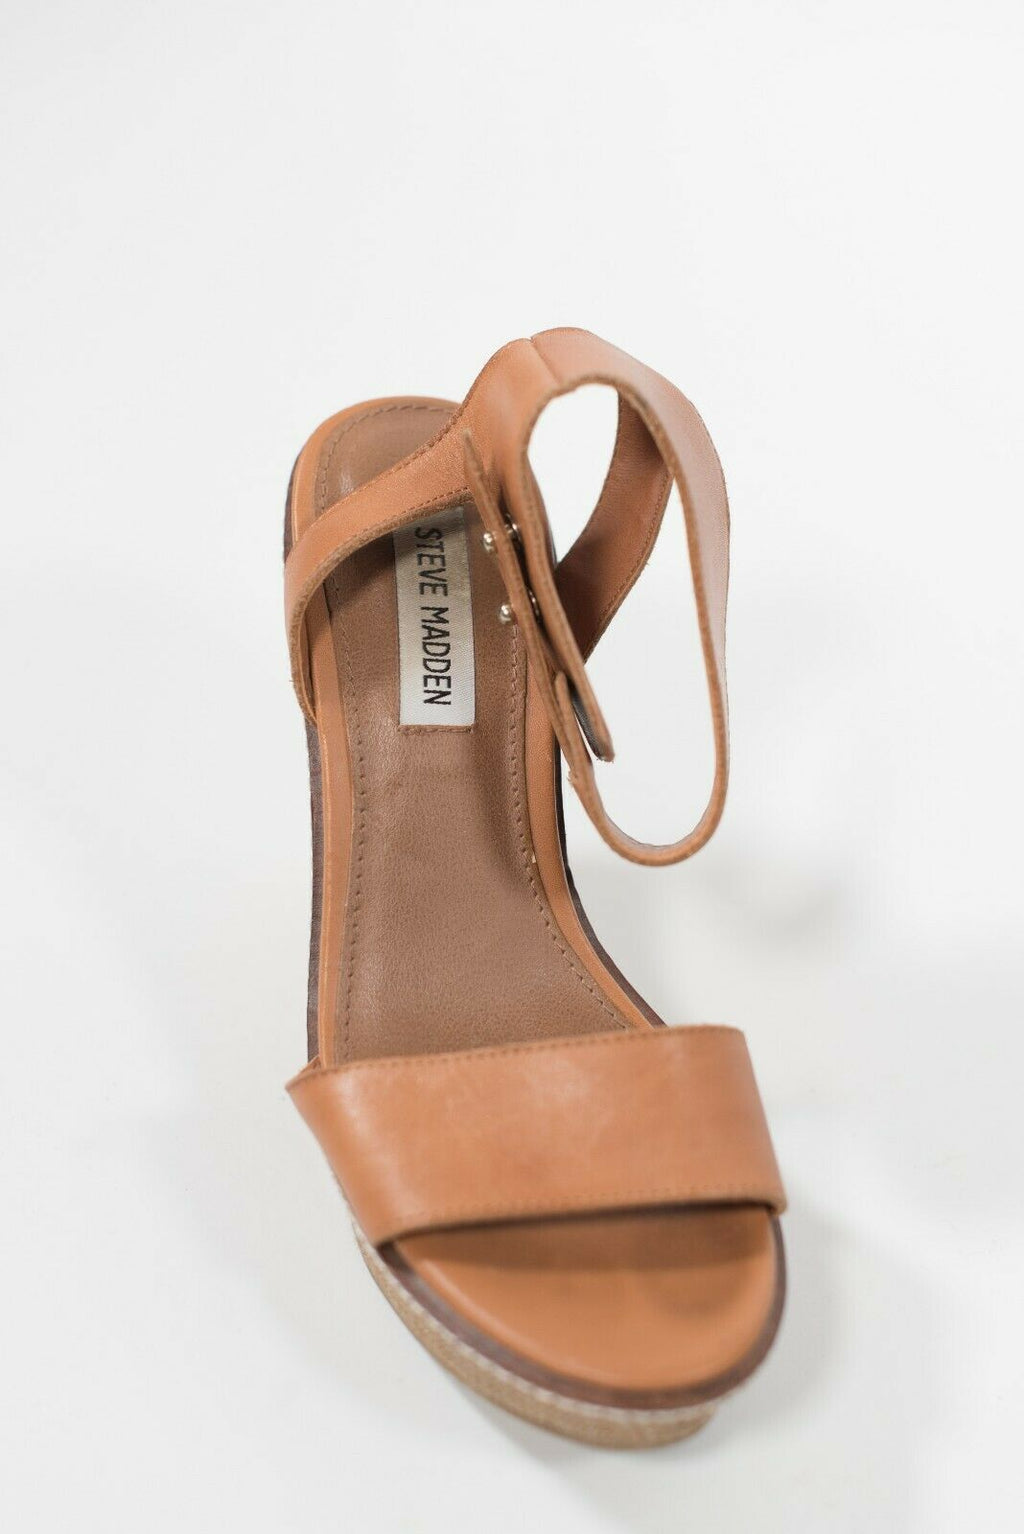 Steve Madden Women's Size 7 Tan Brown Wedge Sandals Leather Strap Open Toe Shoes